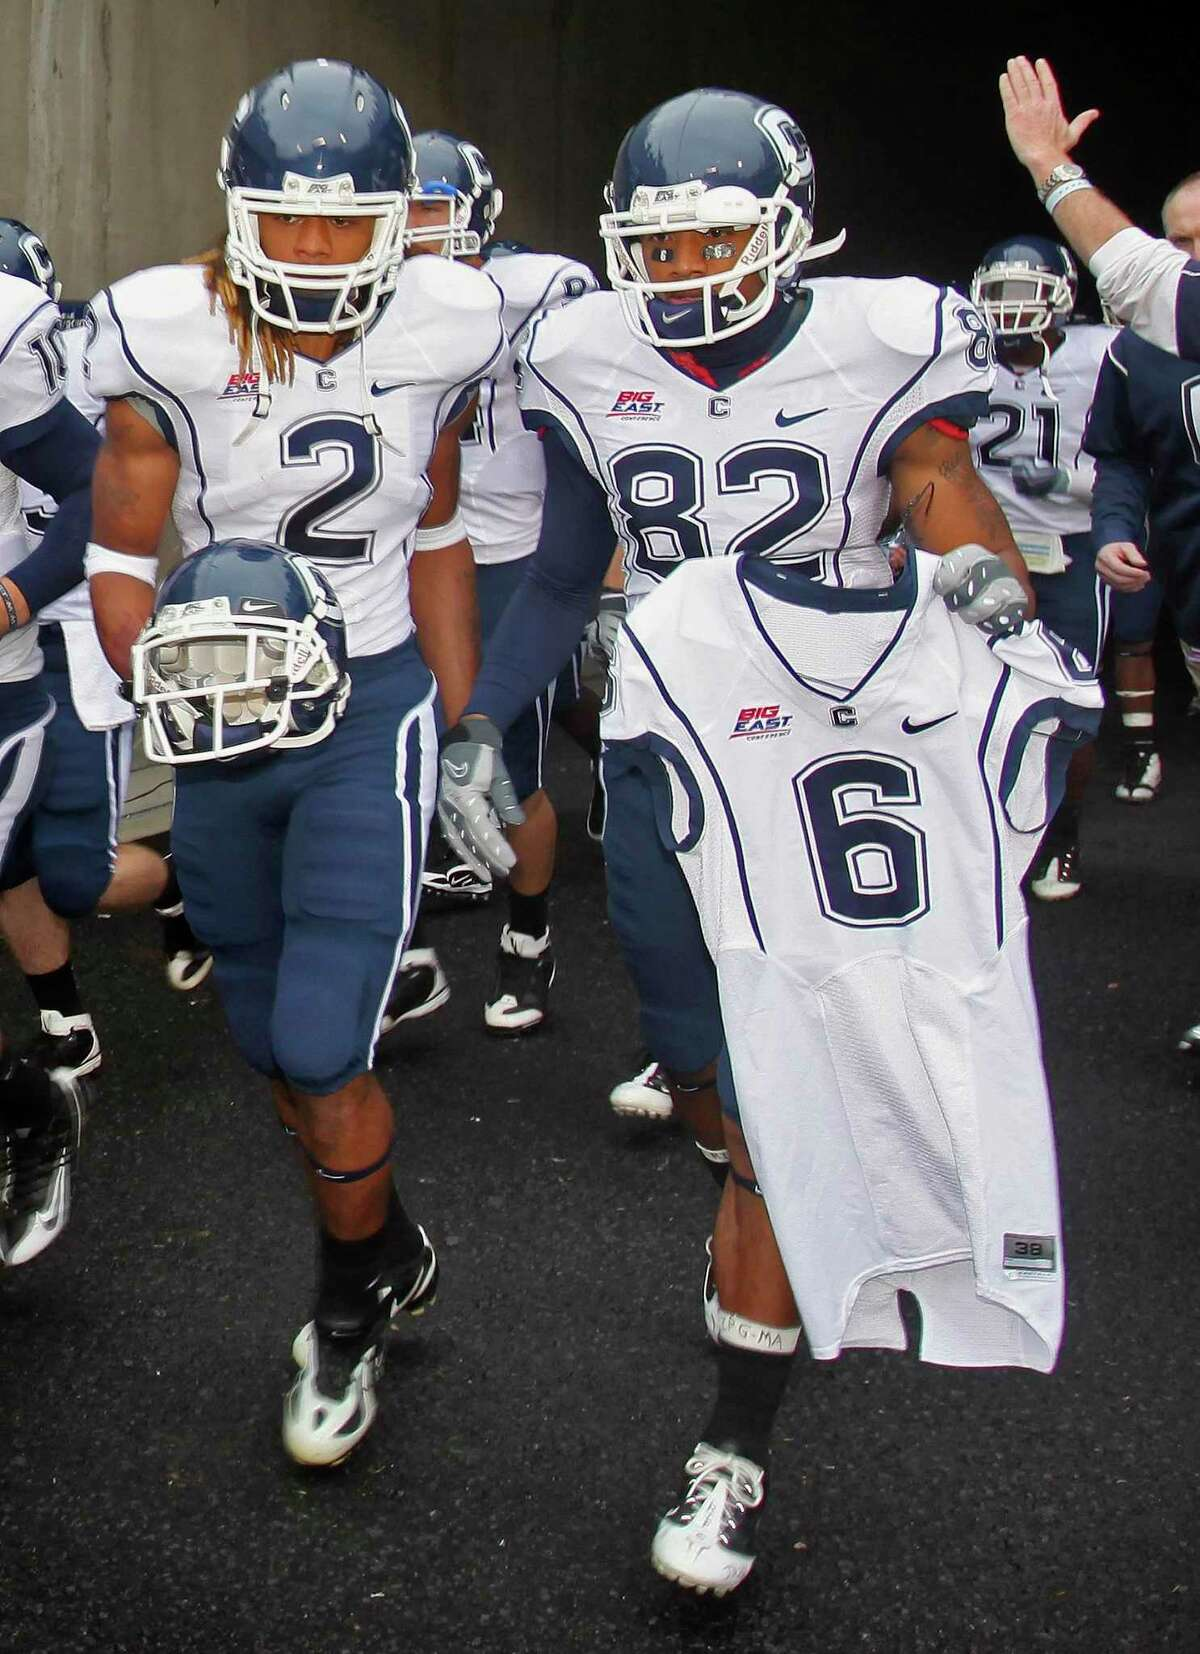 UConn's Andre Dixon (2) and Kashif Moore enter Mountaineer Field carrying the helmet and jersey of slain teammate Jasper Howard in 2009.